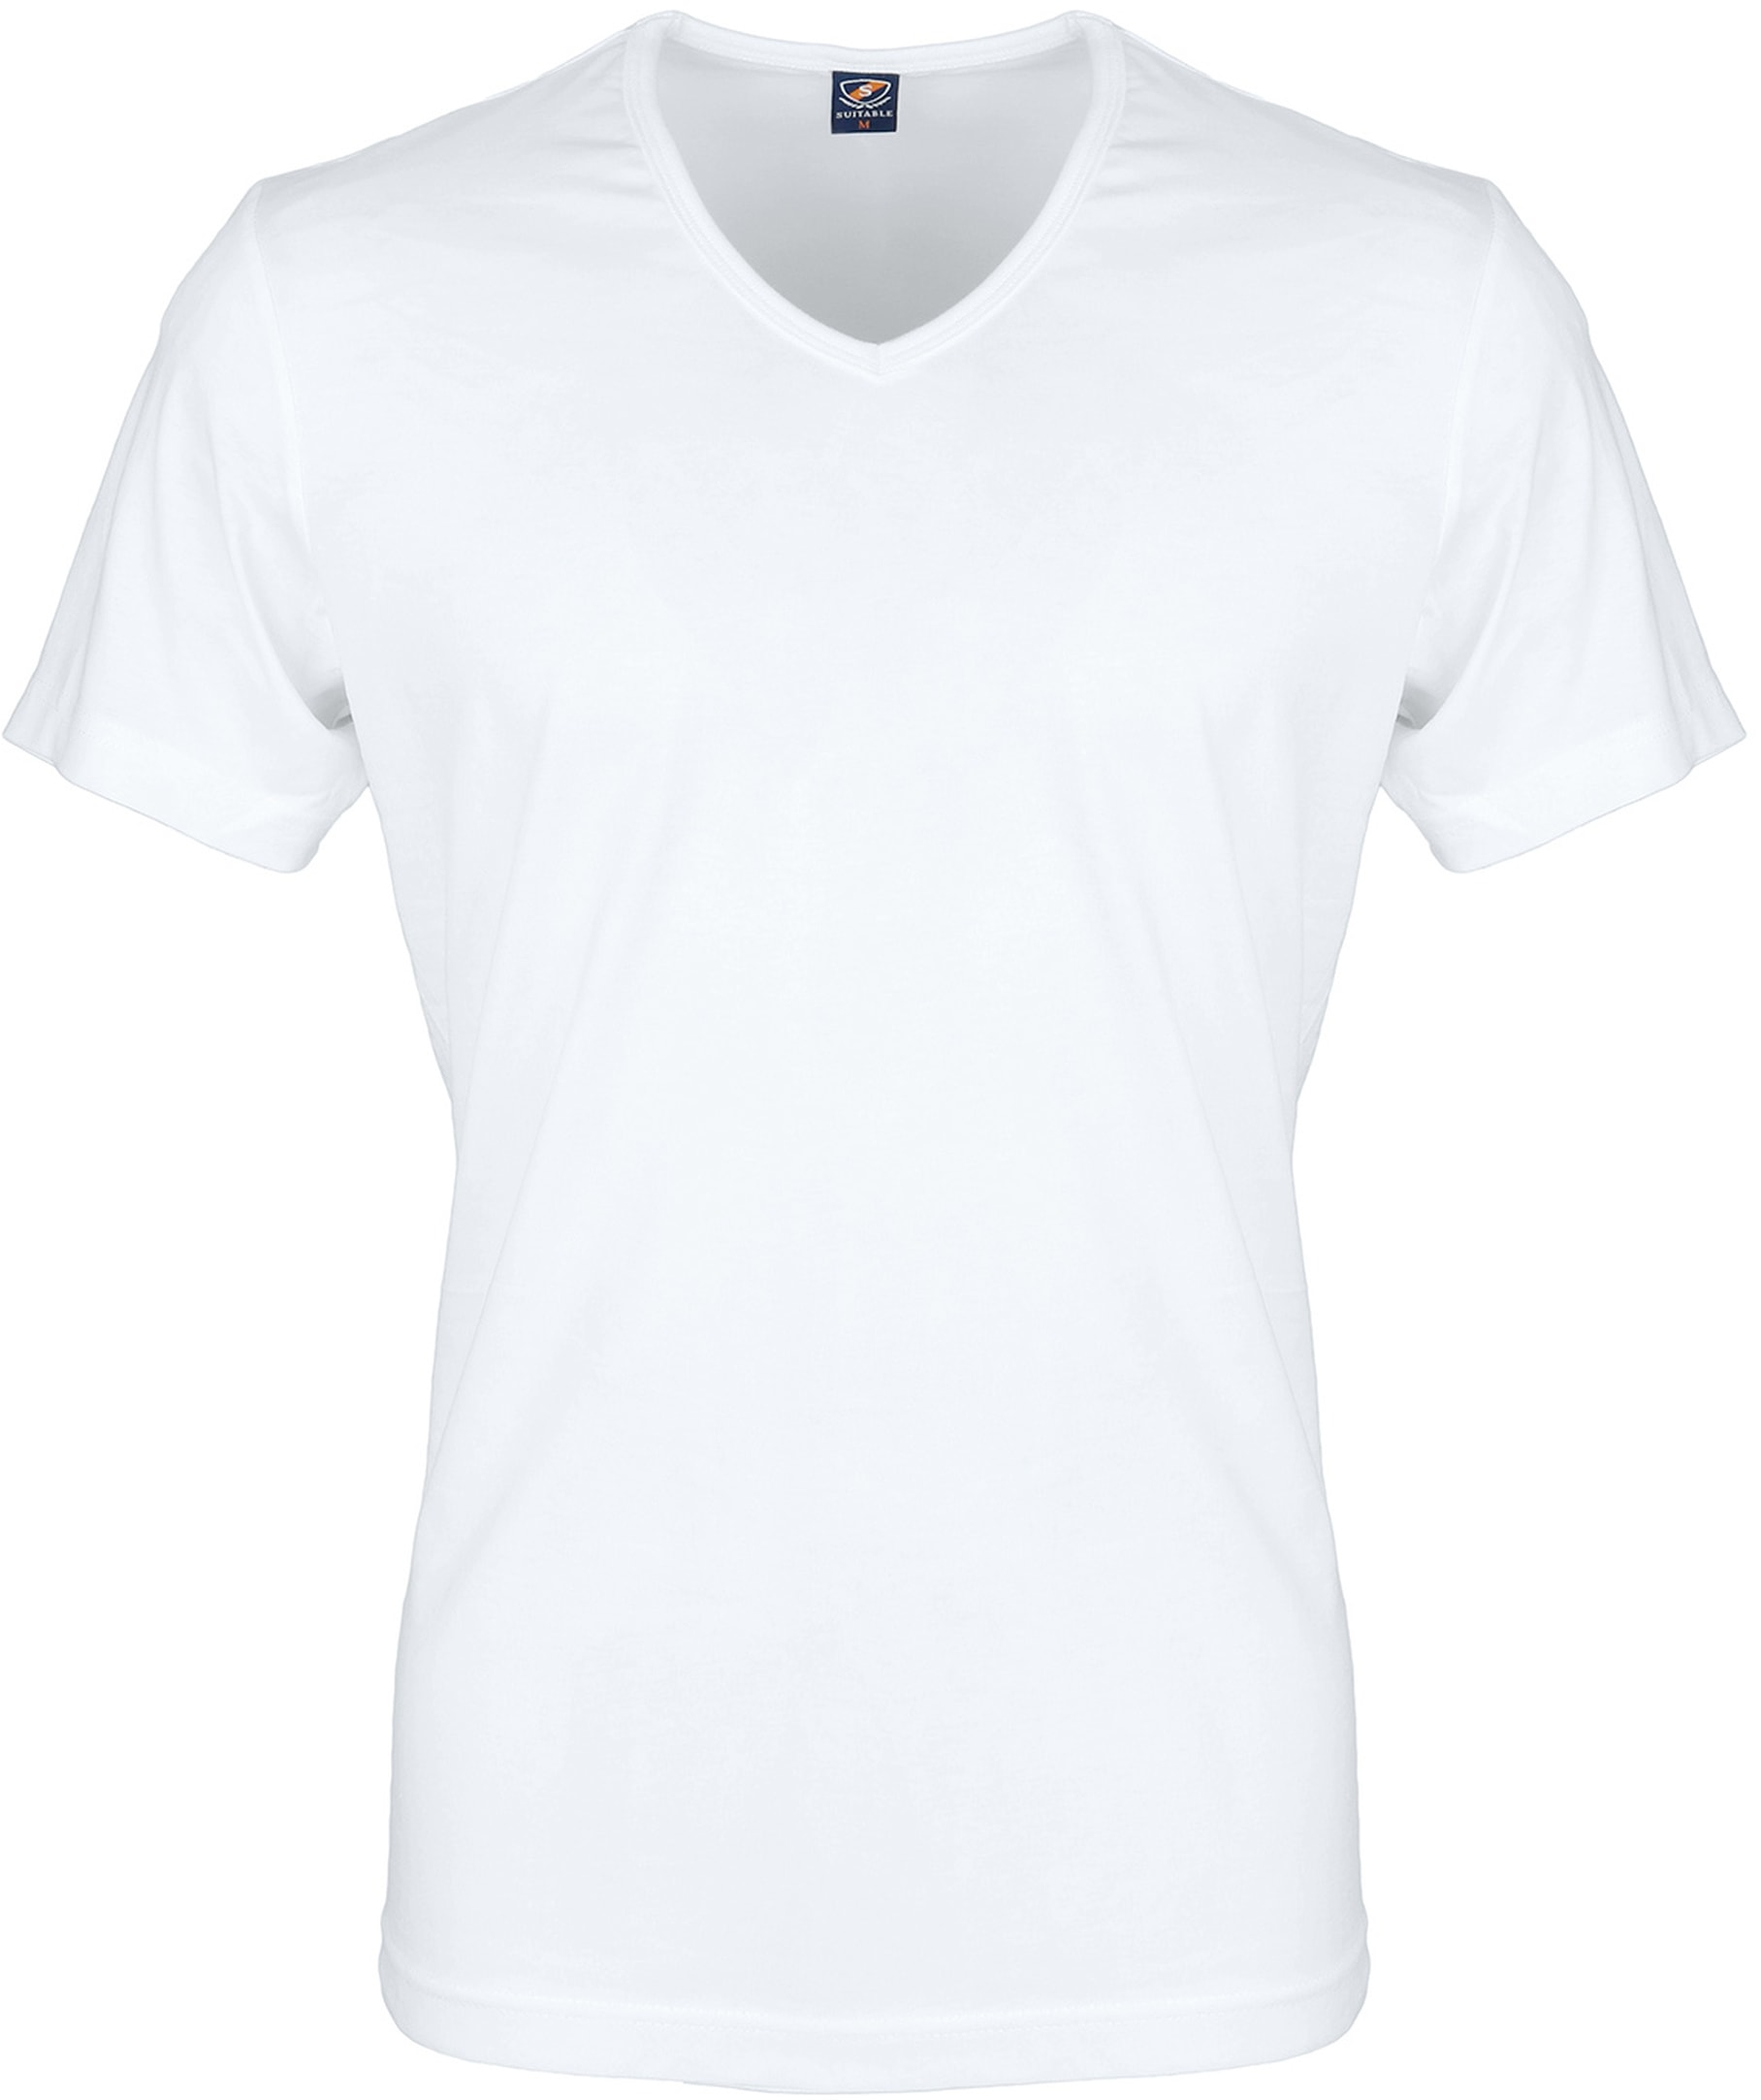 White T-shirt 6-Pack V-Neck foto 1